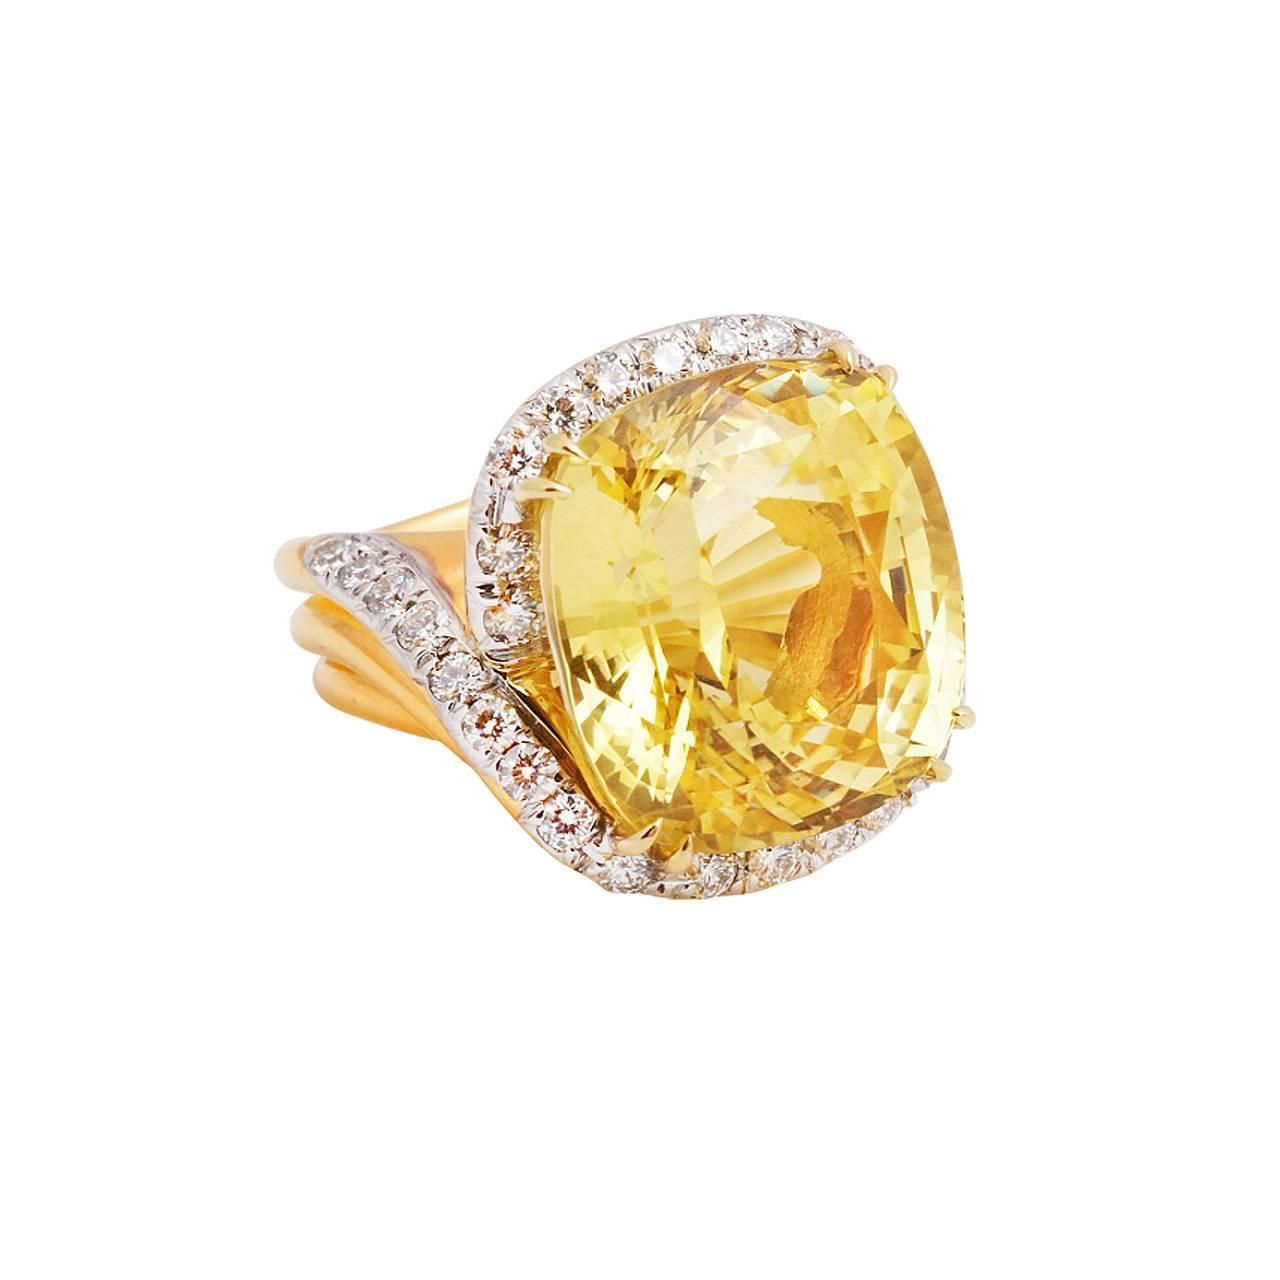 35.25 Carat GIA Yellow Sapphire Diamond Gold Ring | From a unique collection of…